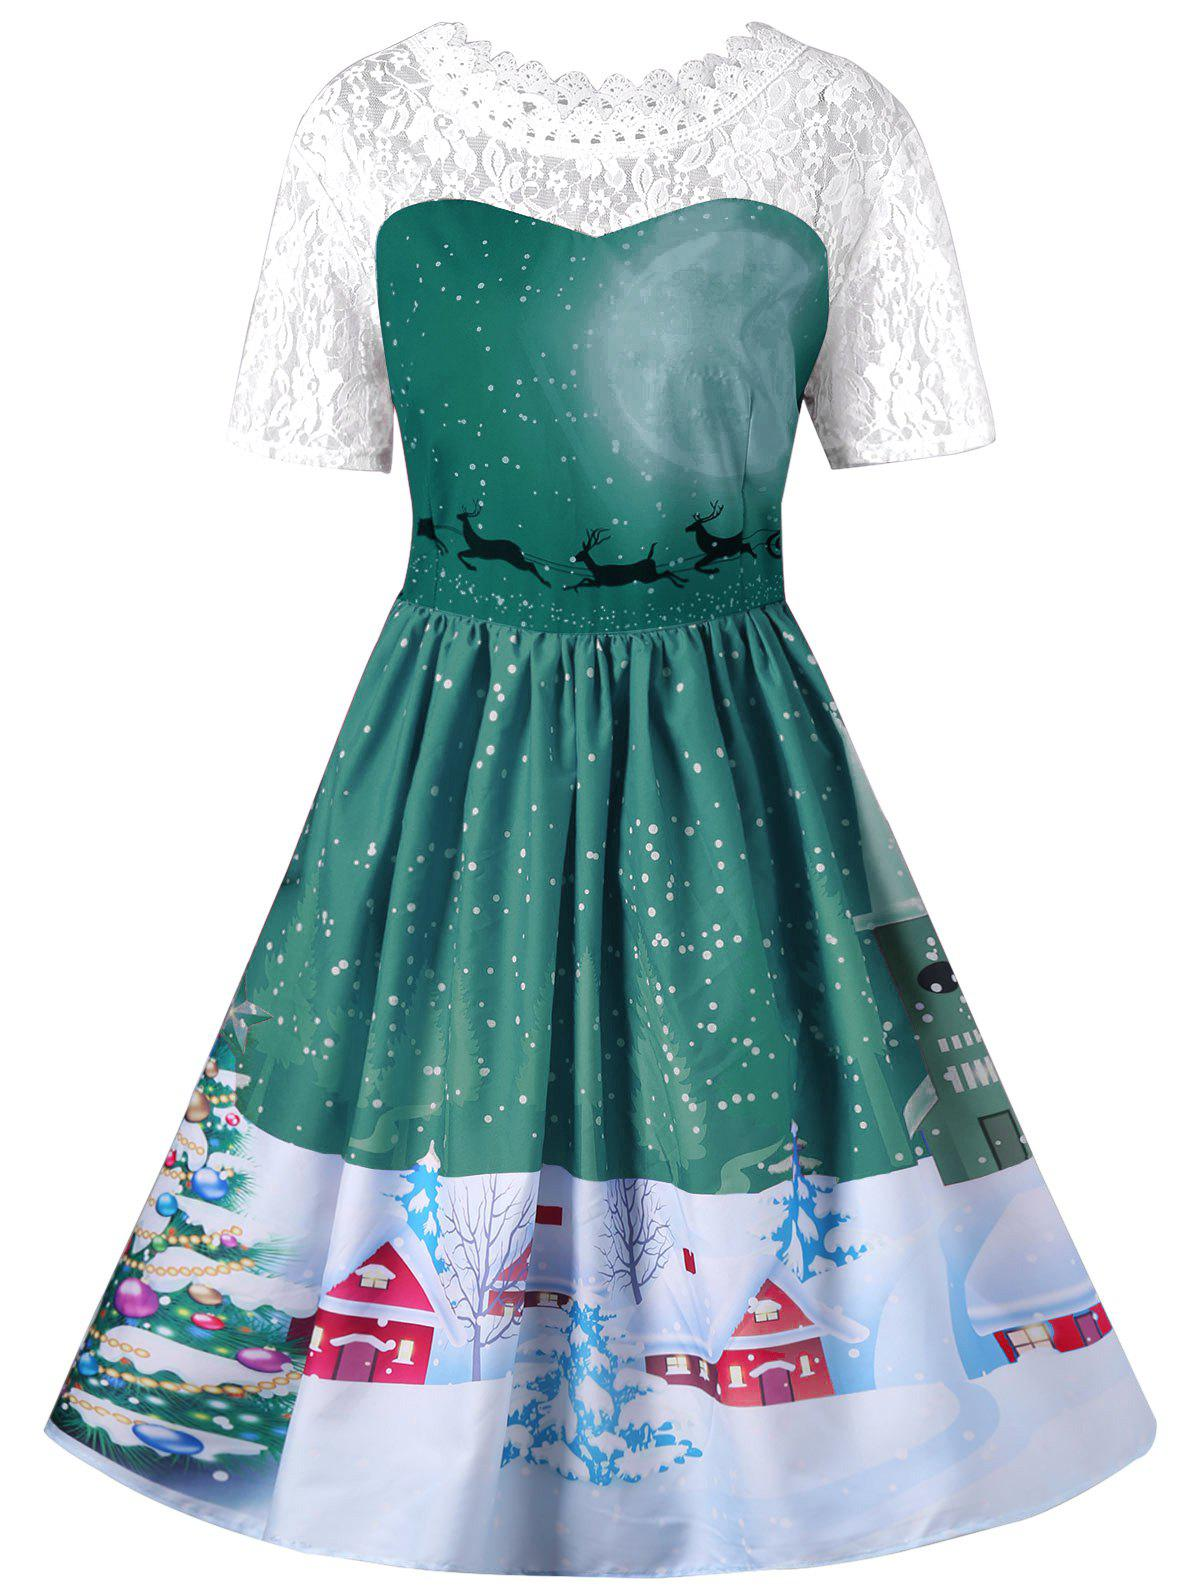 Vintage Christmas Graphic Lace Yoke Swing DressWOMEN<br><br>Size: XL; Color: GREEN; Style: Vintage; Material: Polyester,Spandex; Silhouette: A-Line; Dresses Length: Knee-Length; Neckline: Round Collar; Sleeve Length: Short Sleeves; Embellishment: Lace; Pattern Type: Animal; With Belt: No; Season: Fall,Spring; Weight: 0.3100kg; Package Contents: 1 x Dress;